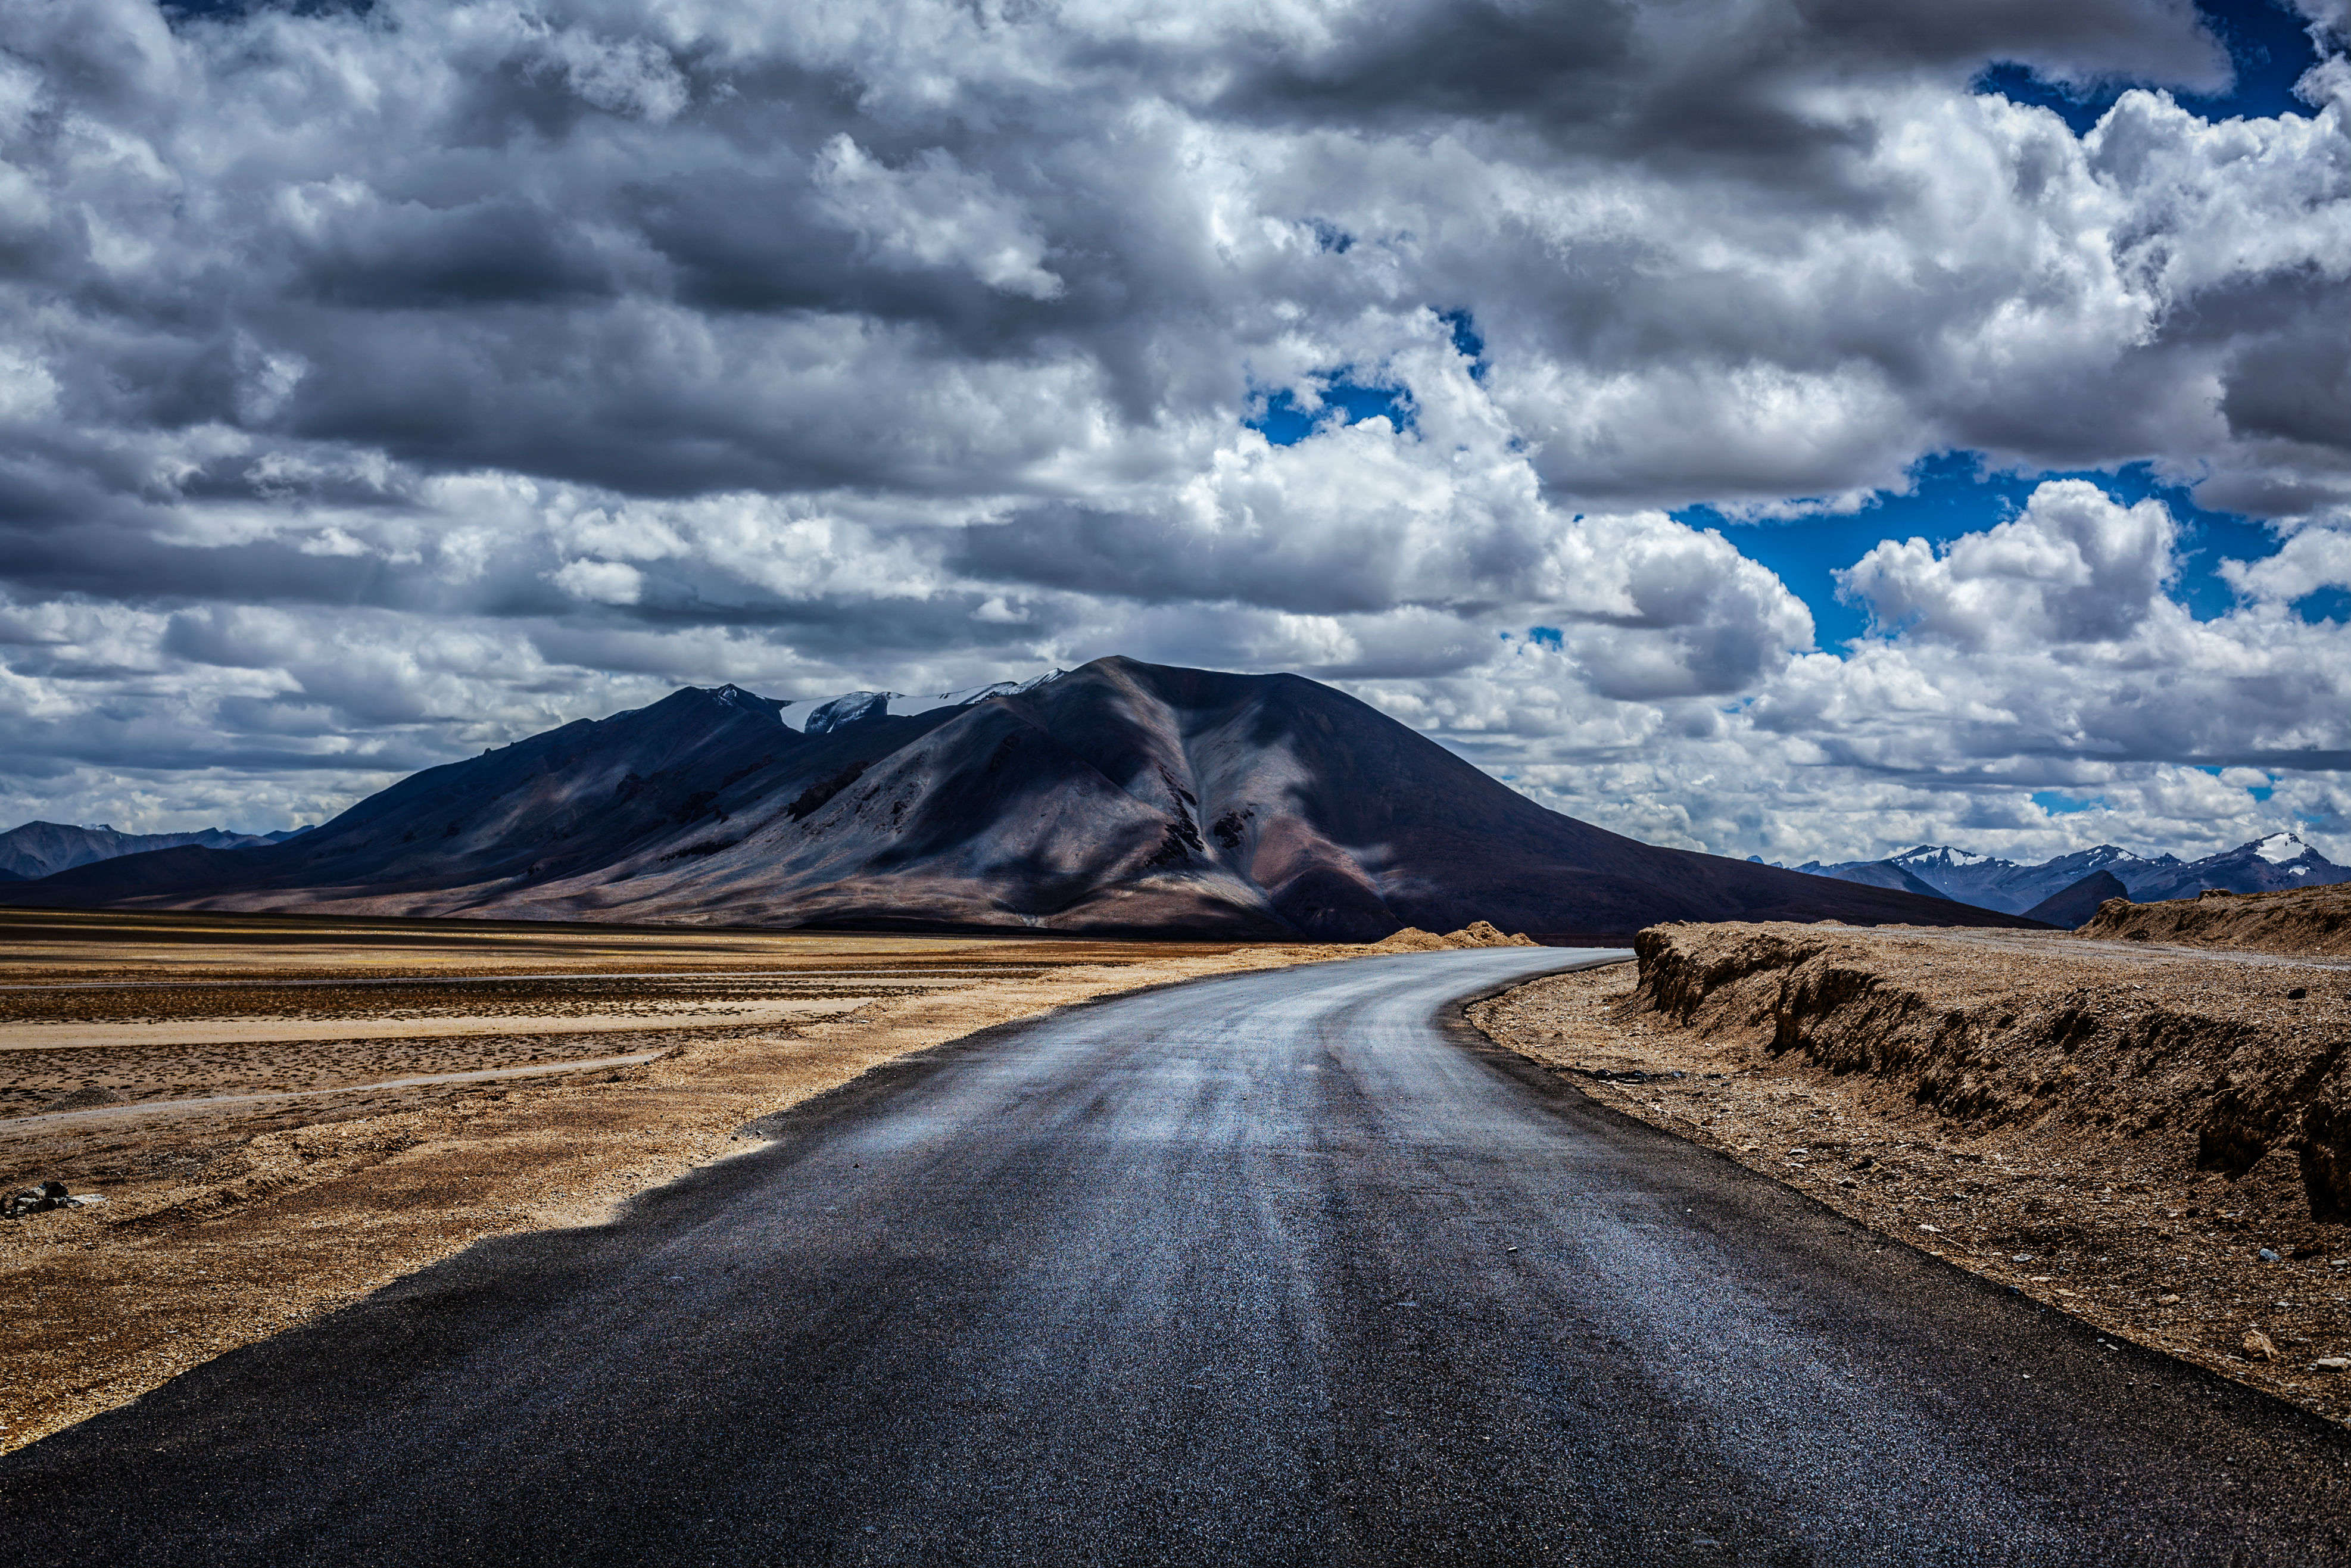 A guide to the most epic road trips in India